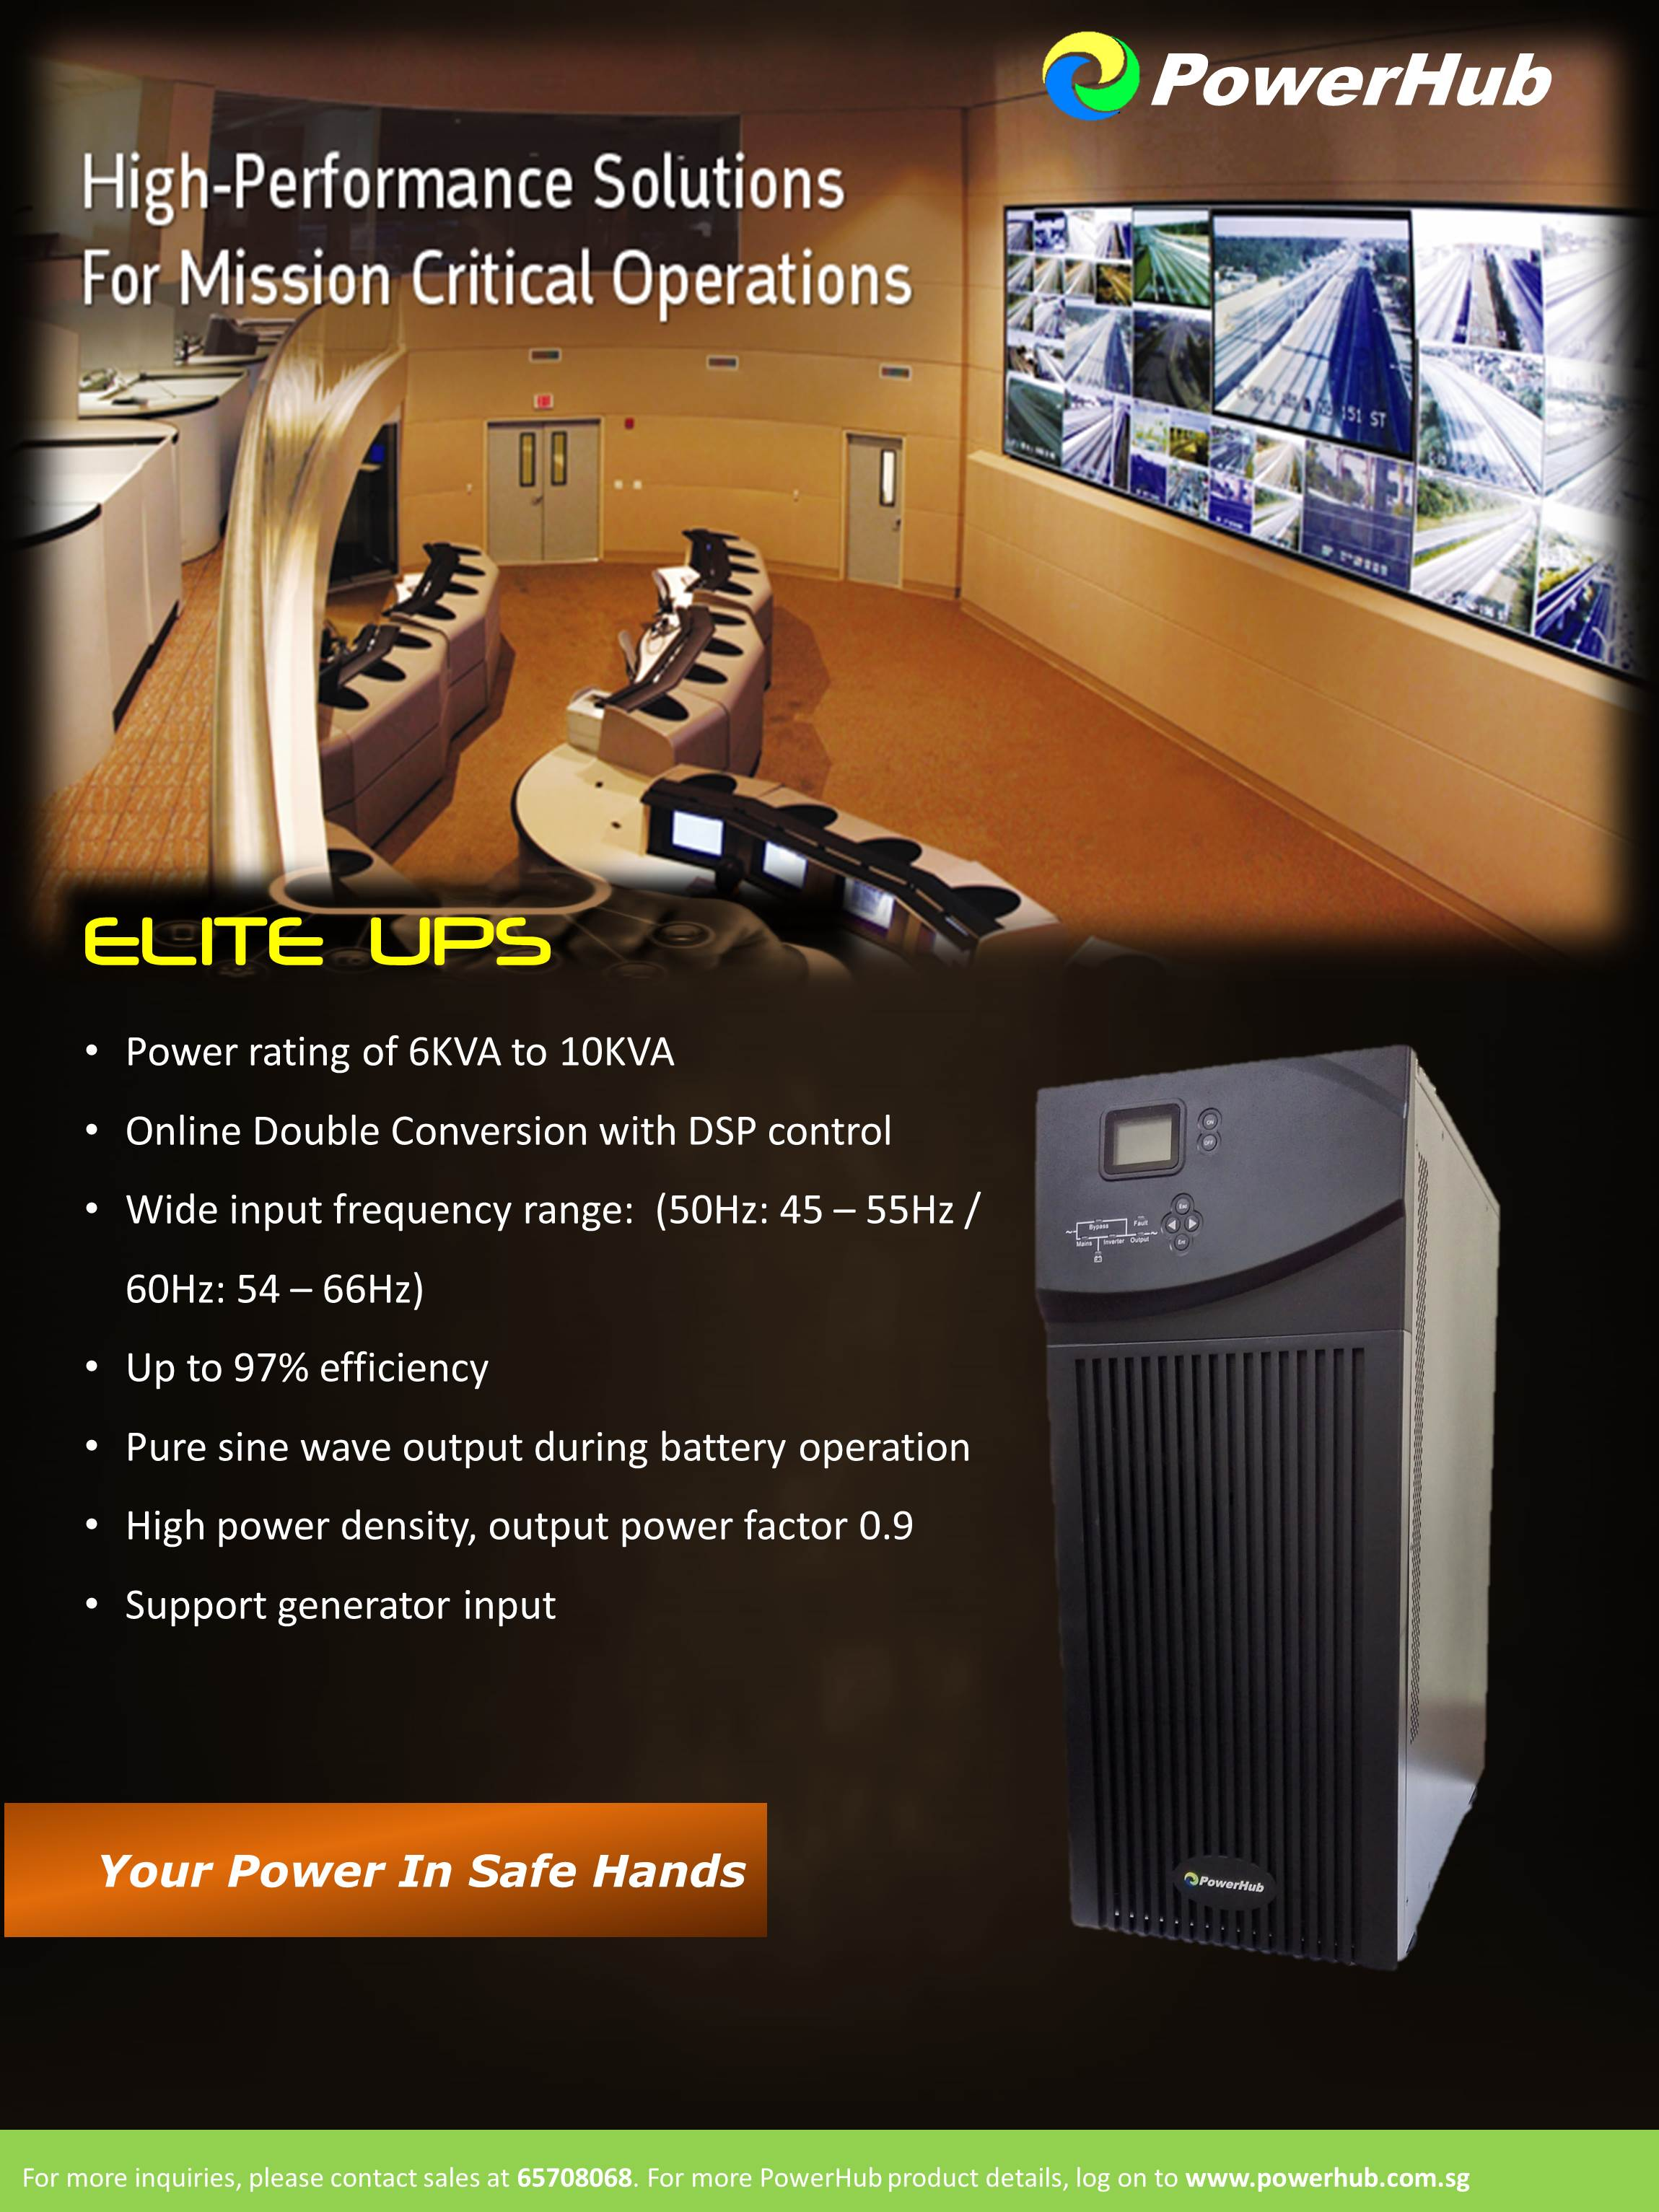 ELITE UPS Tower